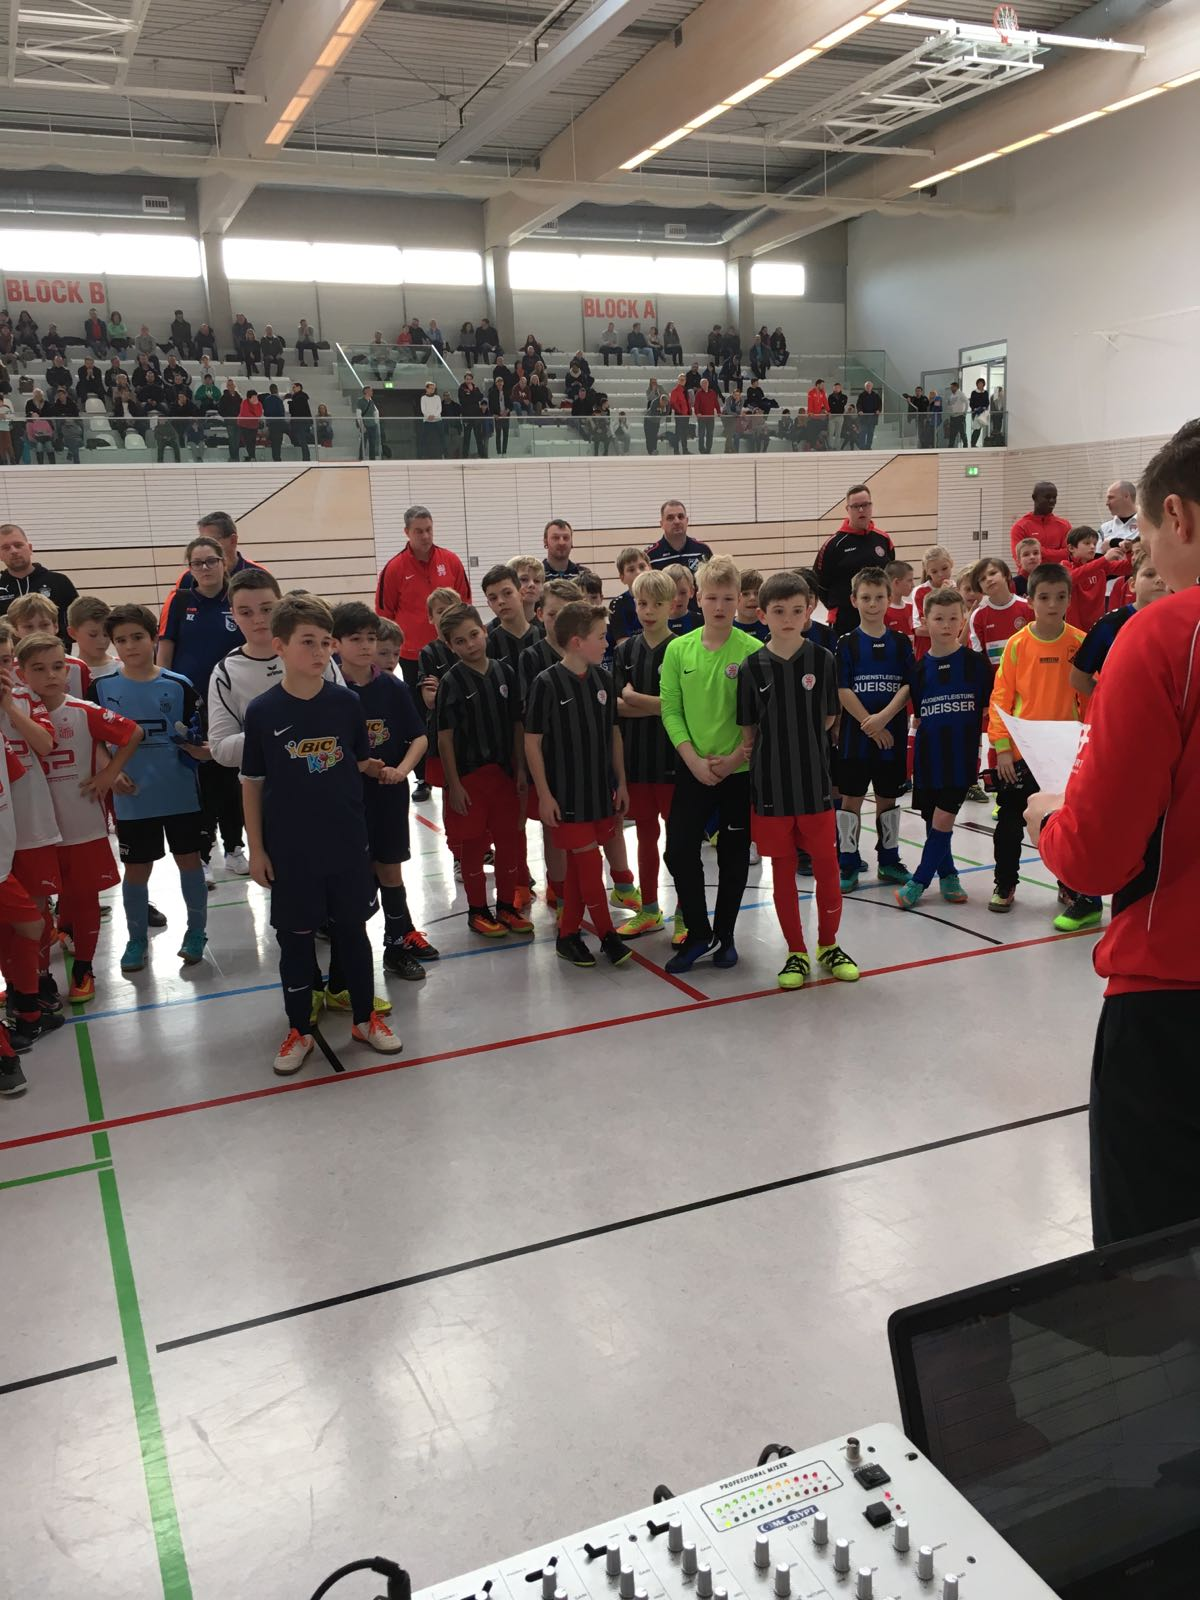 U11 Winter-Bornatalkickercup in Erfurt